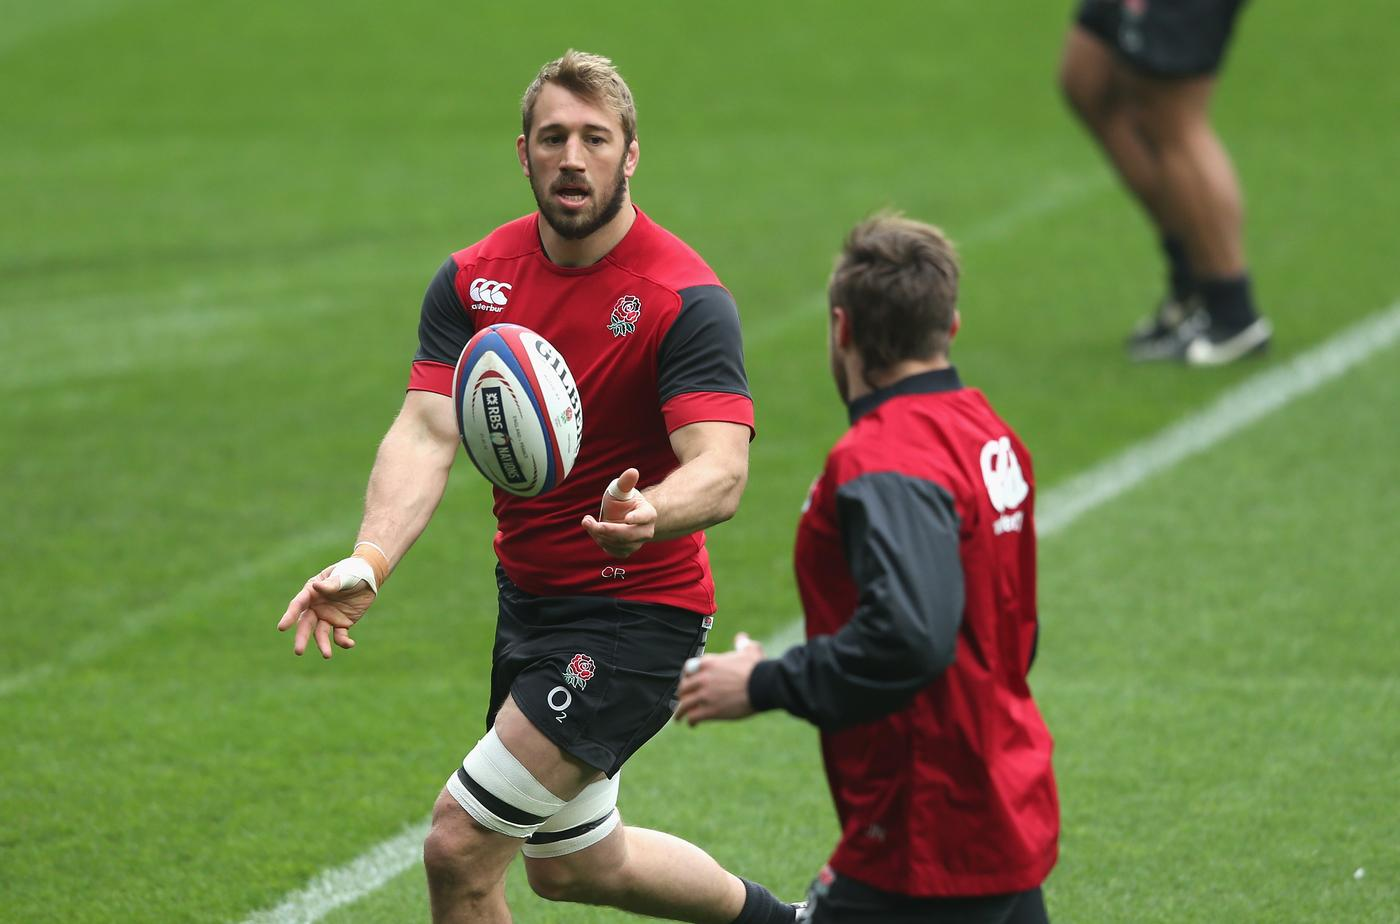 Six Nations 2015 title tussle between France, England, Wales and Ireland will shred fans' nerves